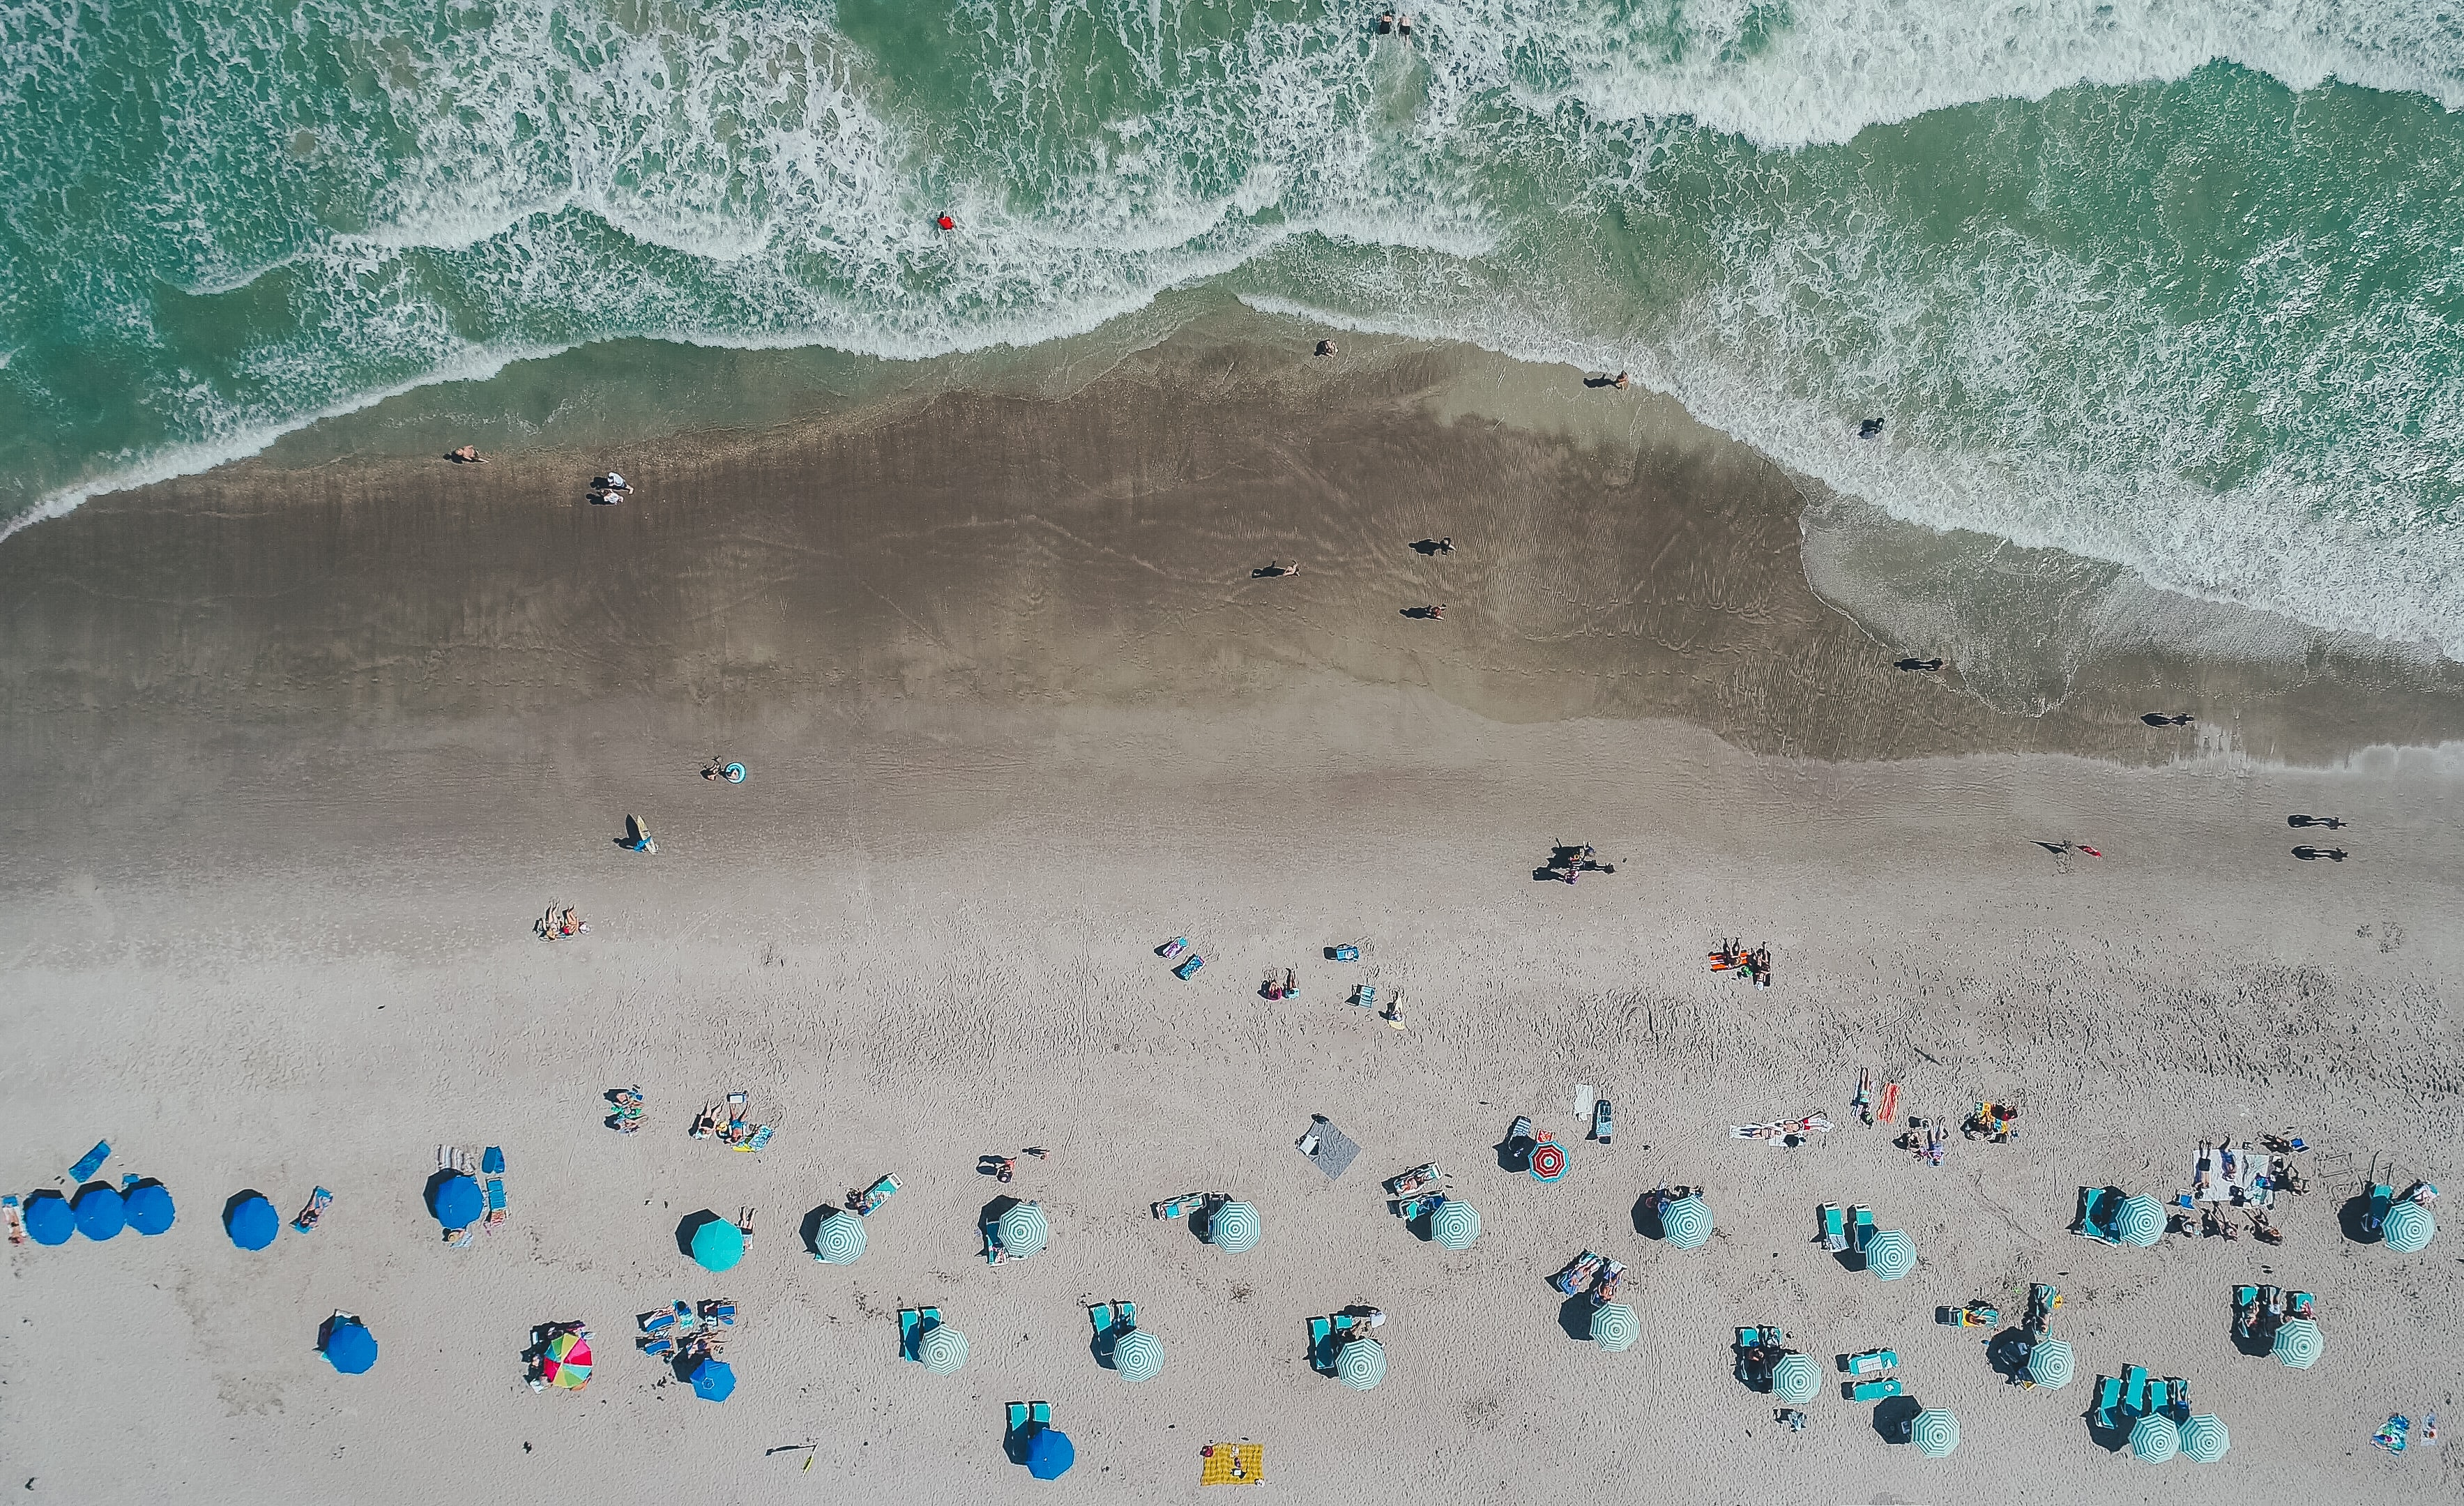 An aerial shot of vacationers on a sandy beach with blue umbrellas and deck chairs